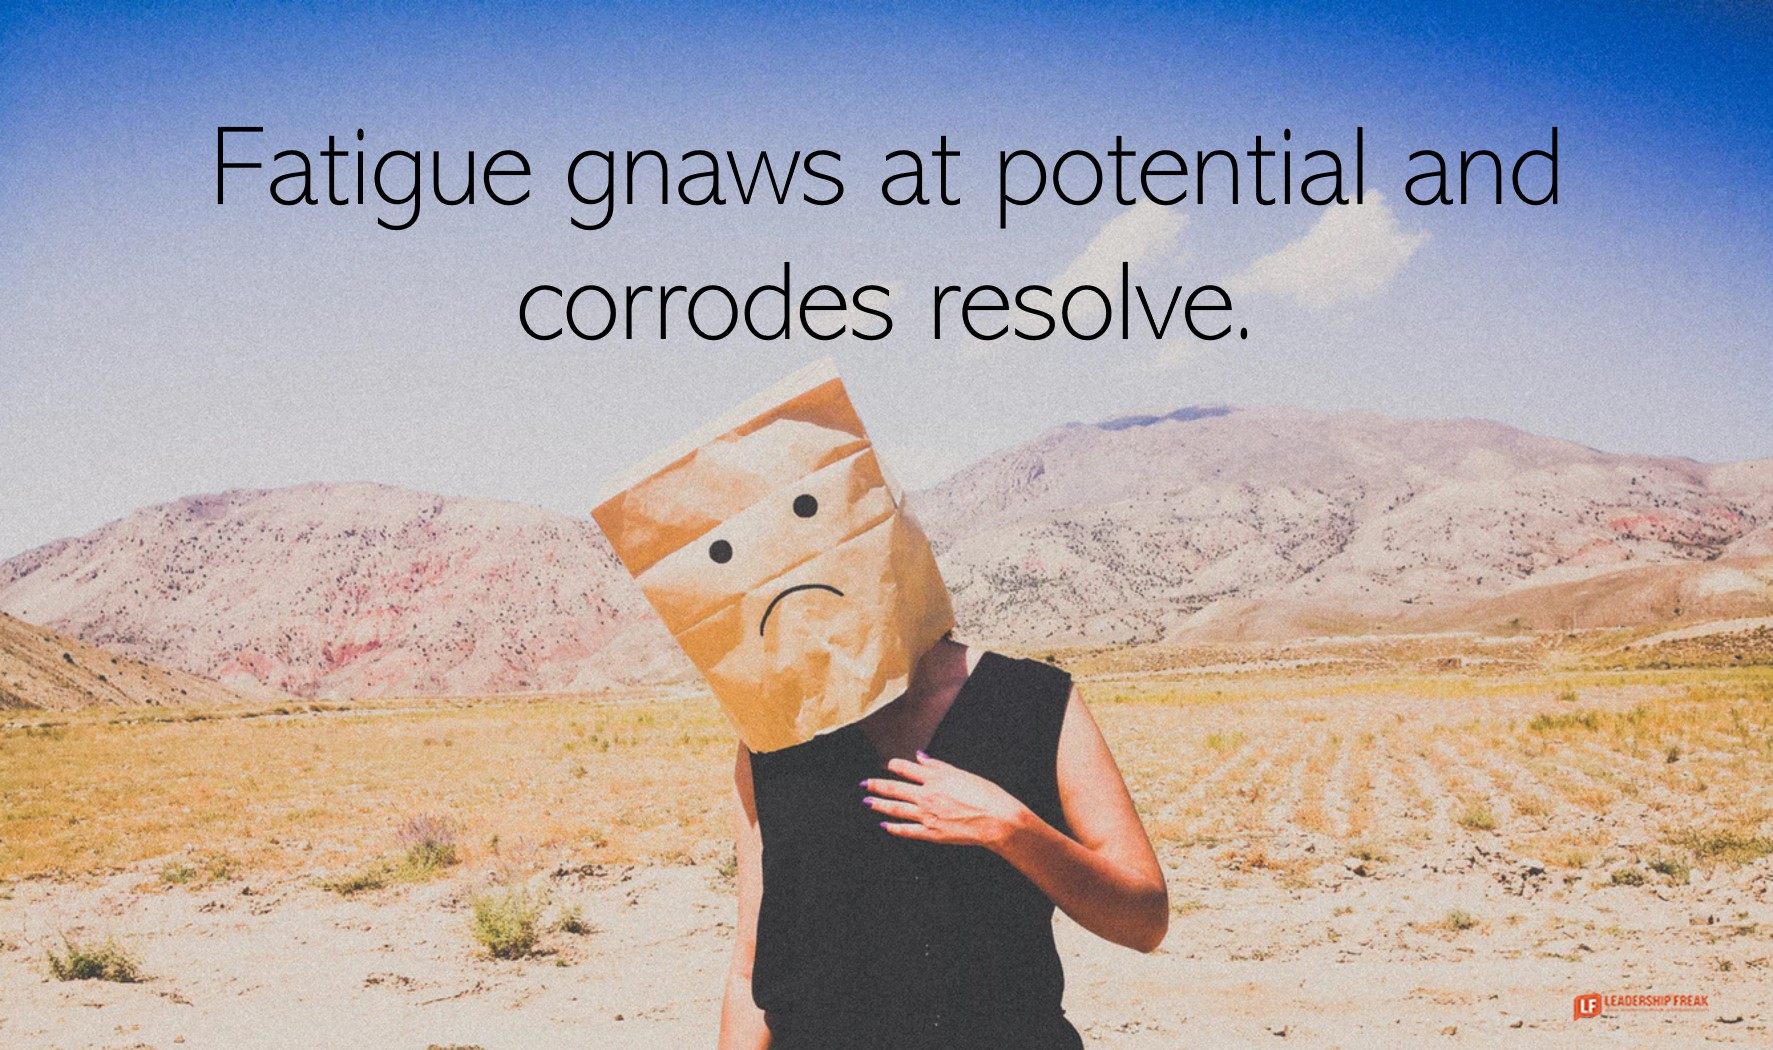 Sad  Fatigue gnaws at potential and corrodes resolve.